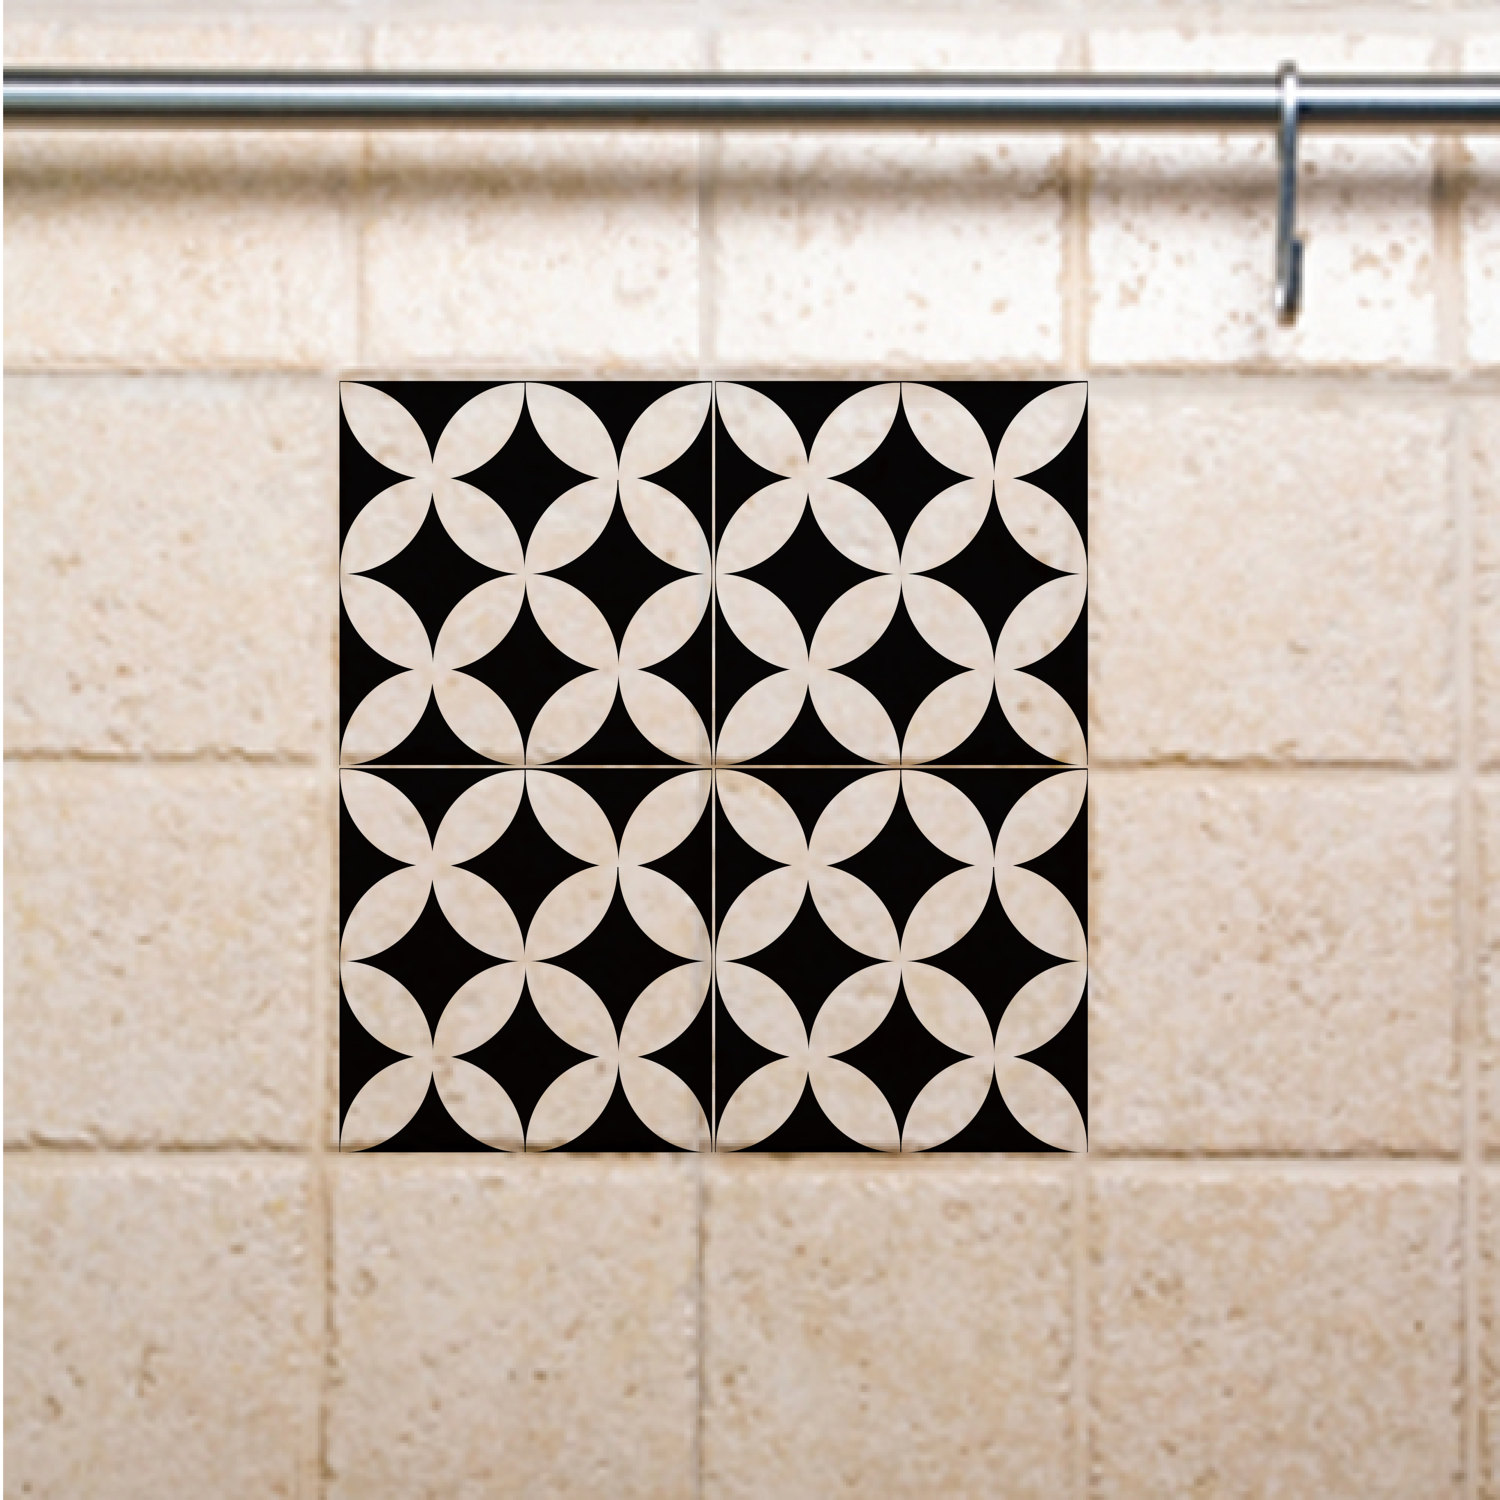 tile-wall-decals-stickers-132-5897aea51.jpg